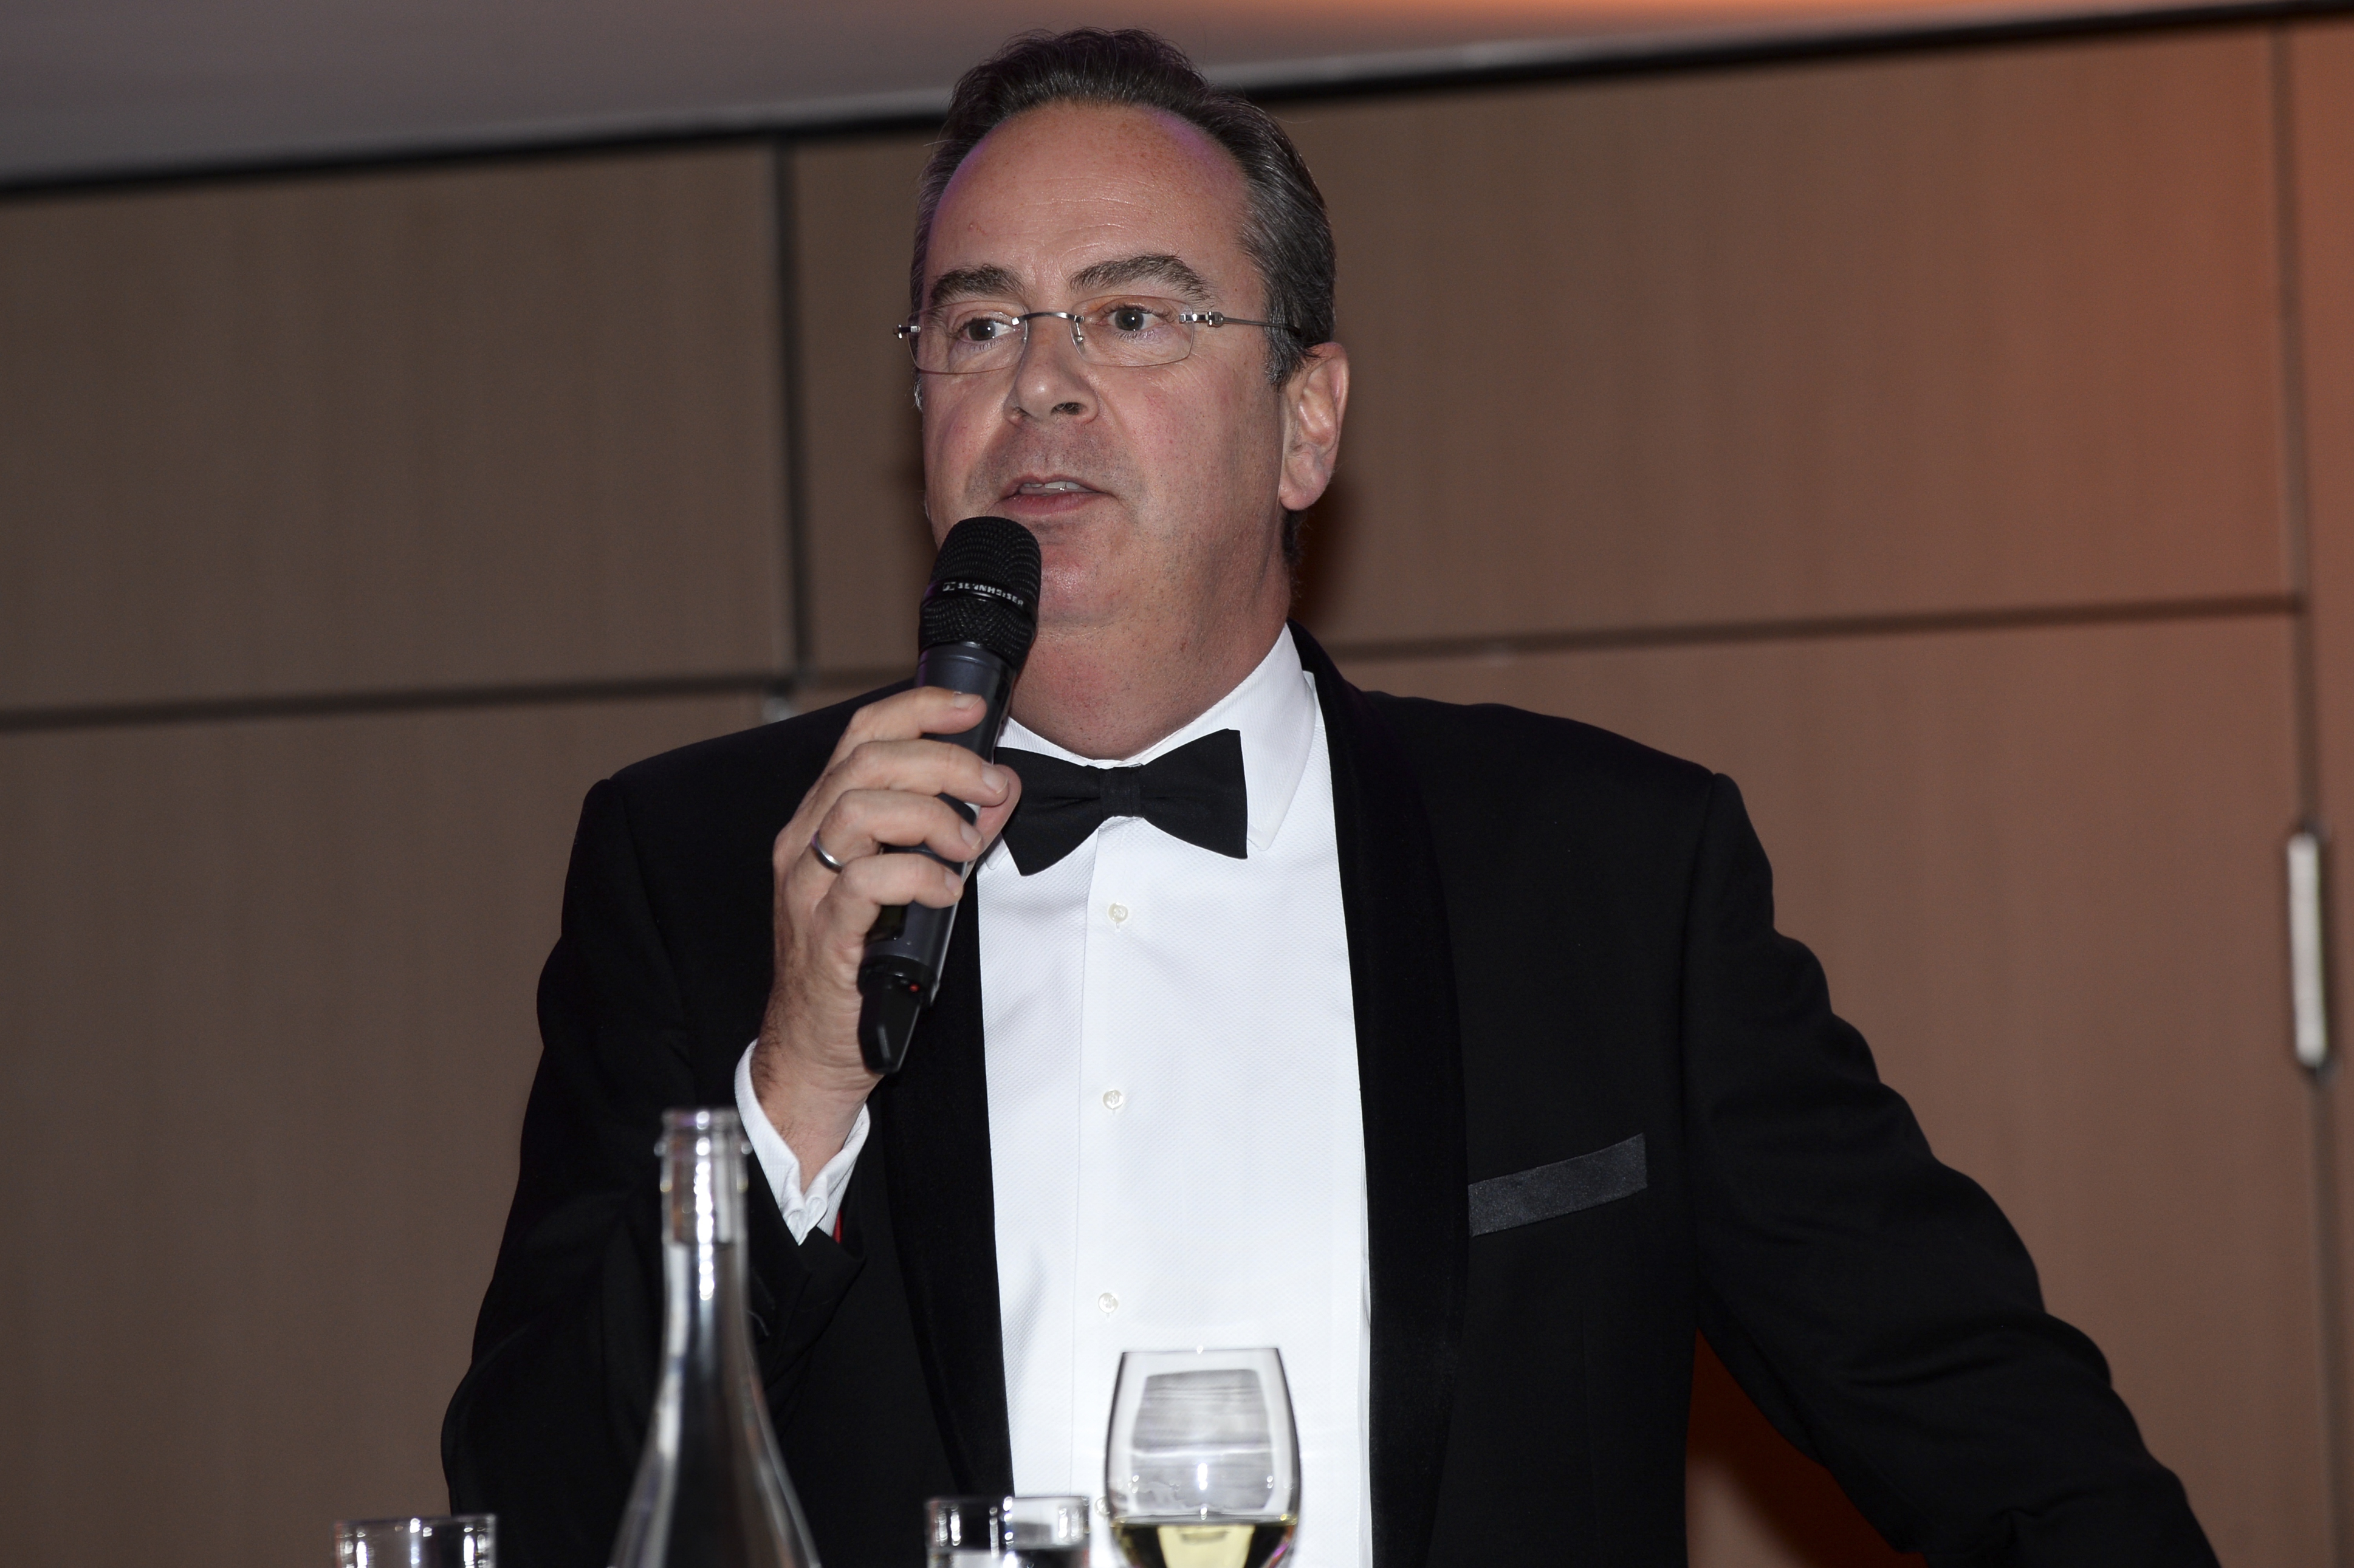 Richard speaking at the Institute of Travel Management Ireland Conference in Dublin in November 2019